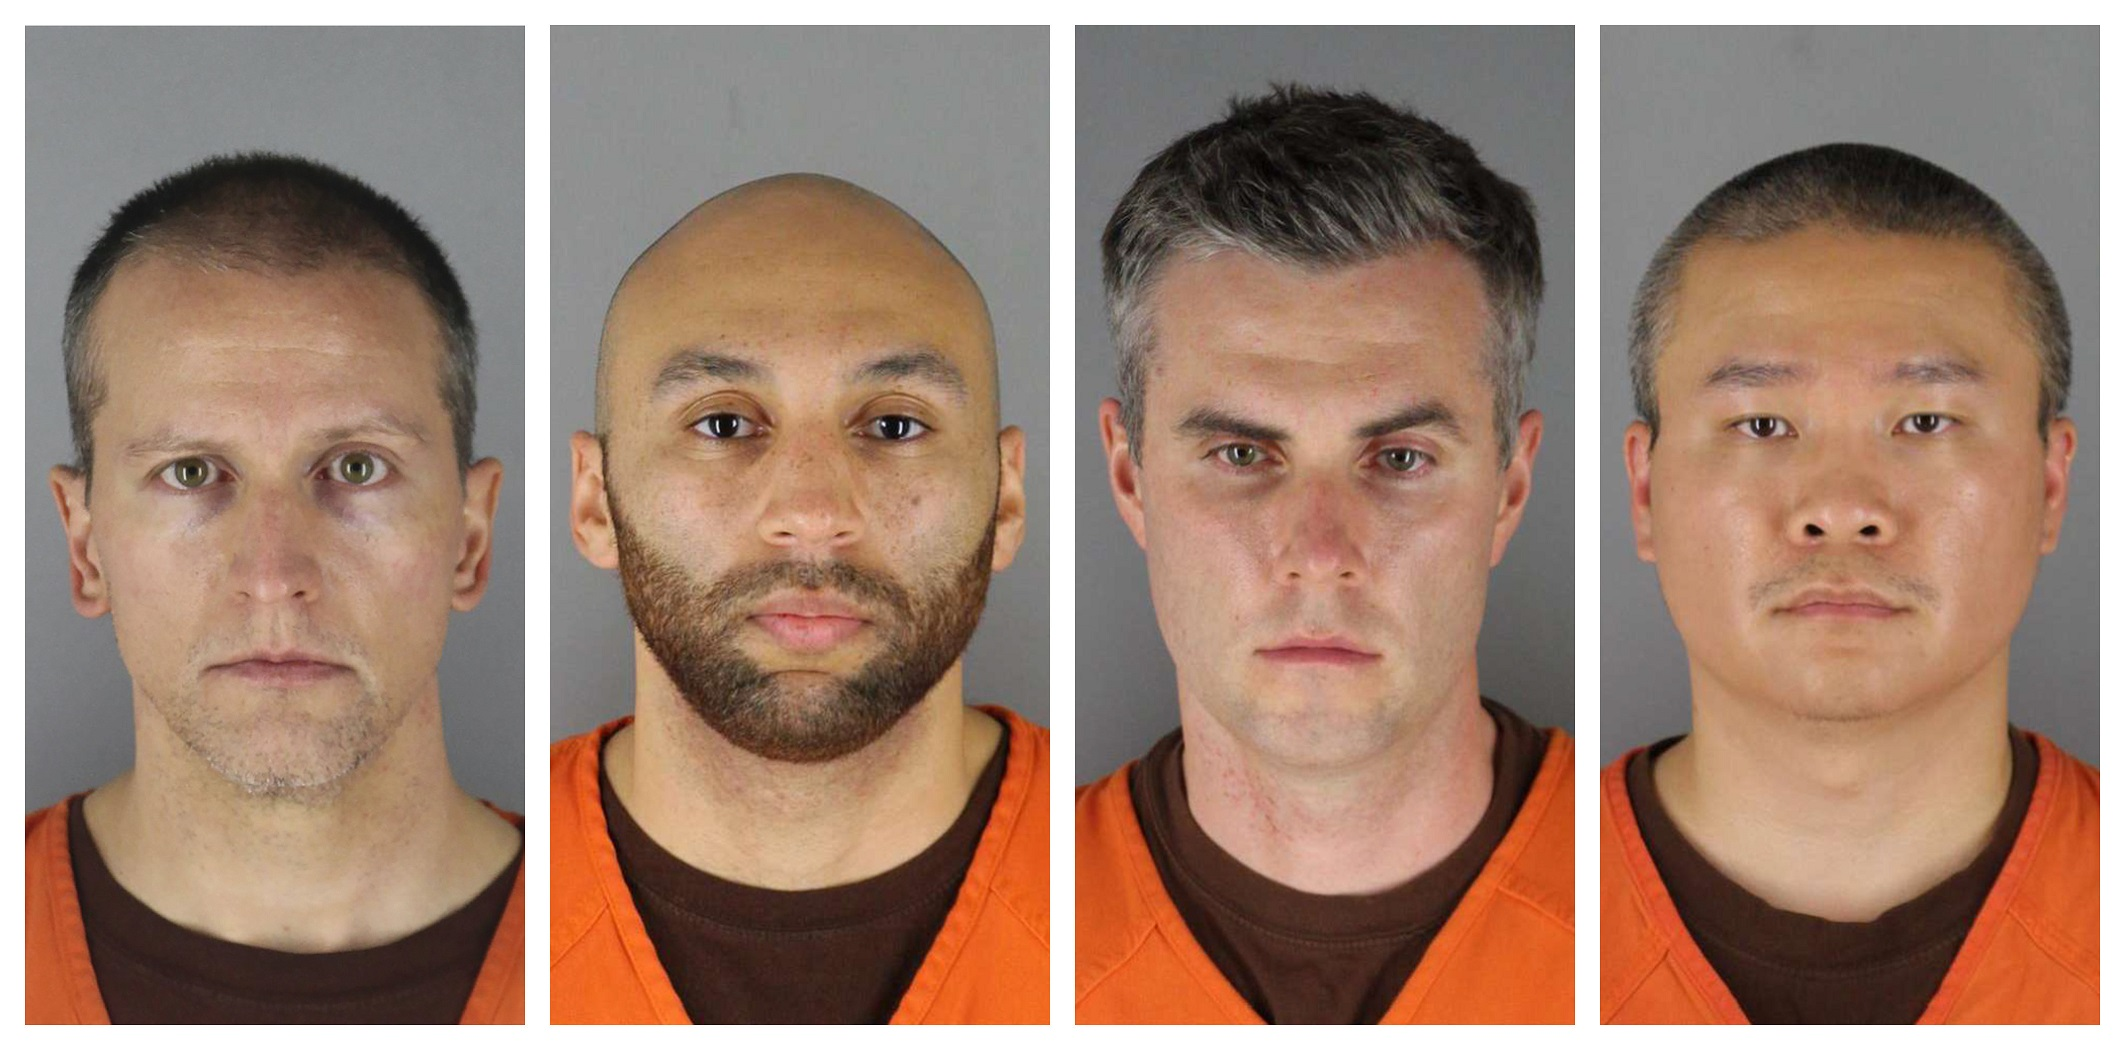 A composite image shows a four mugshots of men wearing the orange uniforms of American detainees.